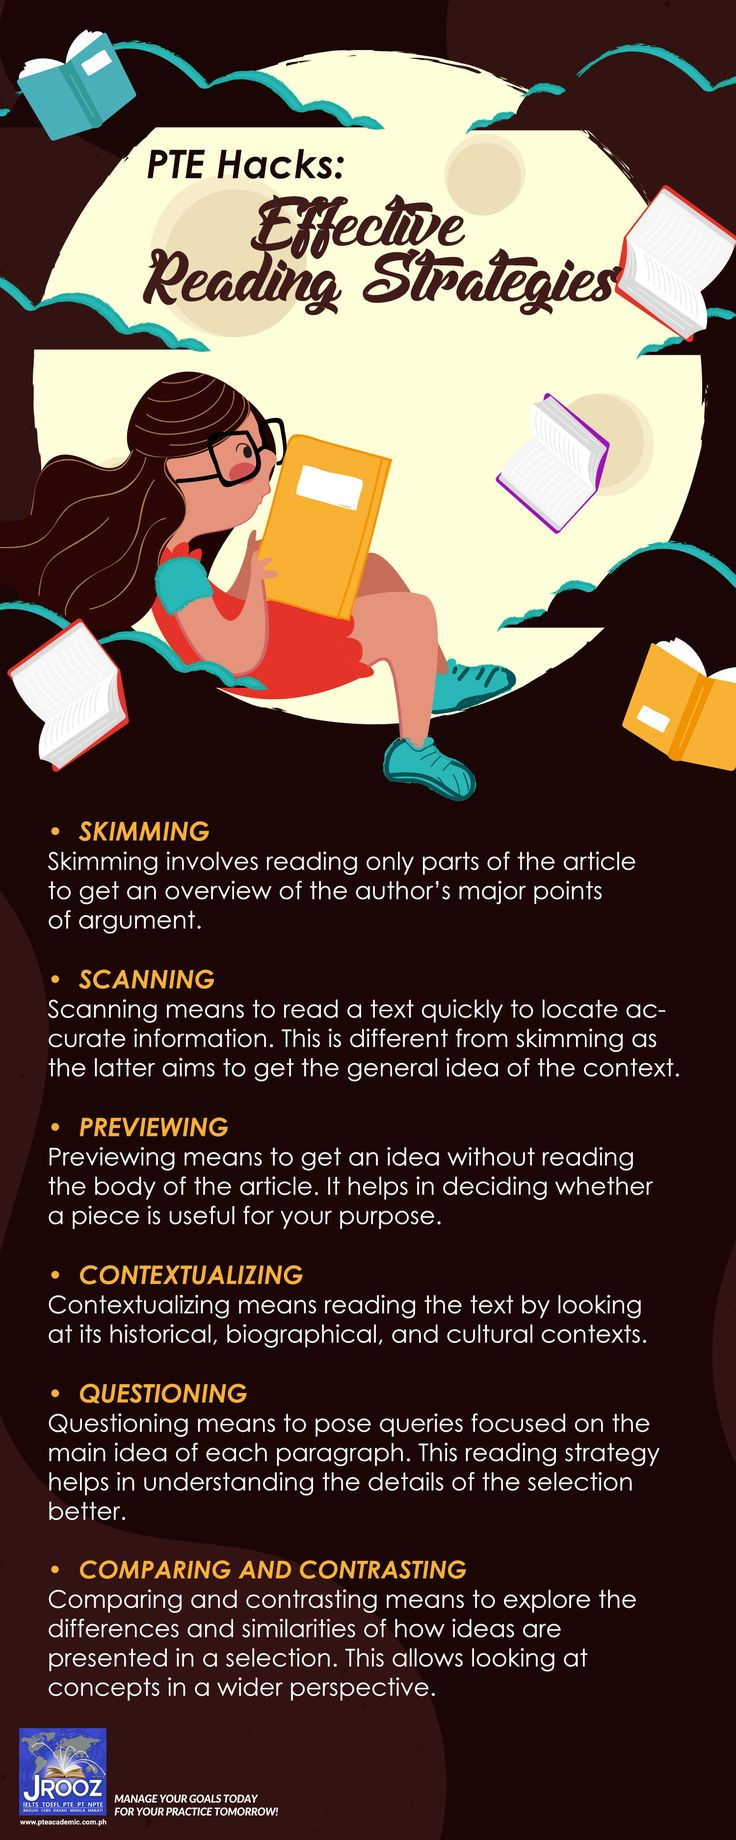 PTE Hacks - Effective Reading Strategies - Aside from attending classes in training institutions, such as the PTE review center in Manila, another way to combat your reading anxiety is to develop reading strategies. Learn more techniques and develop your comprehension and reading skills with JRooz PTE Review Center Philippines.